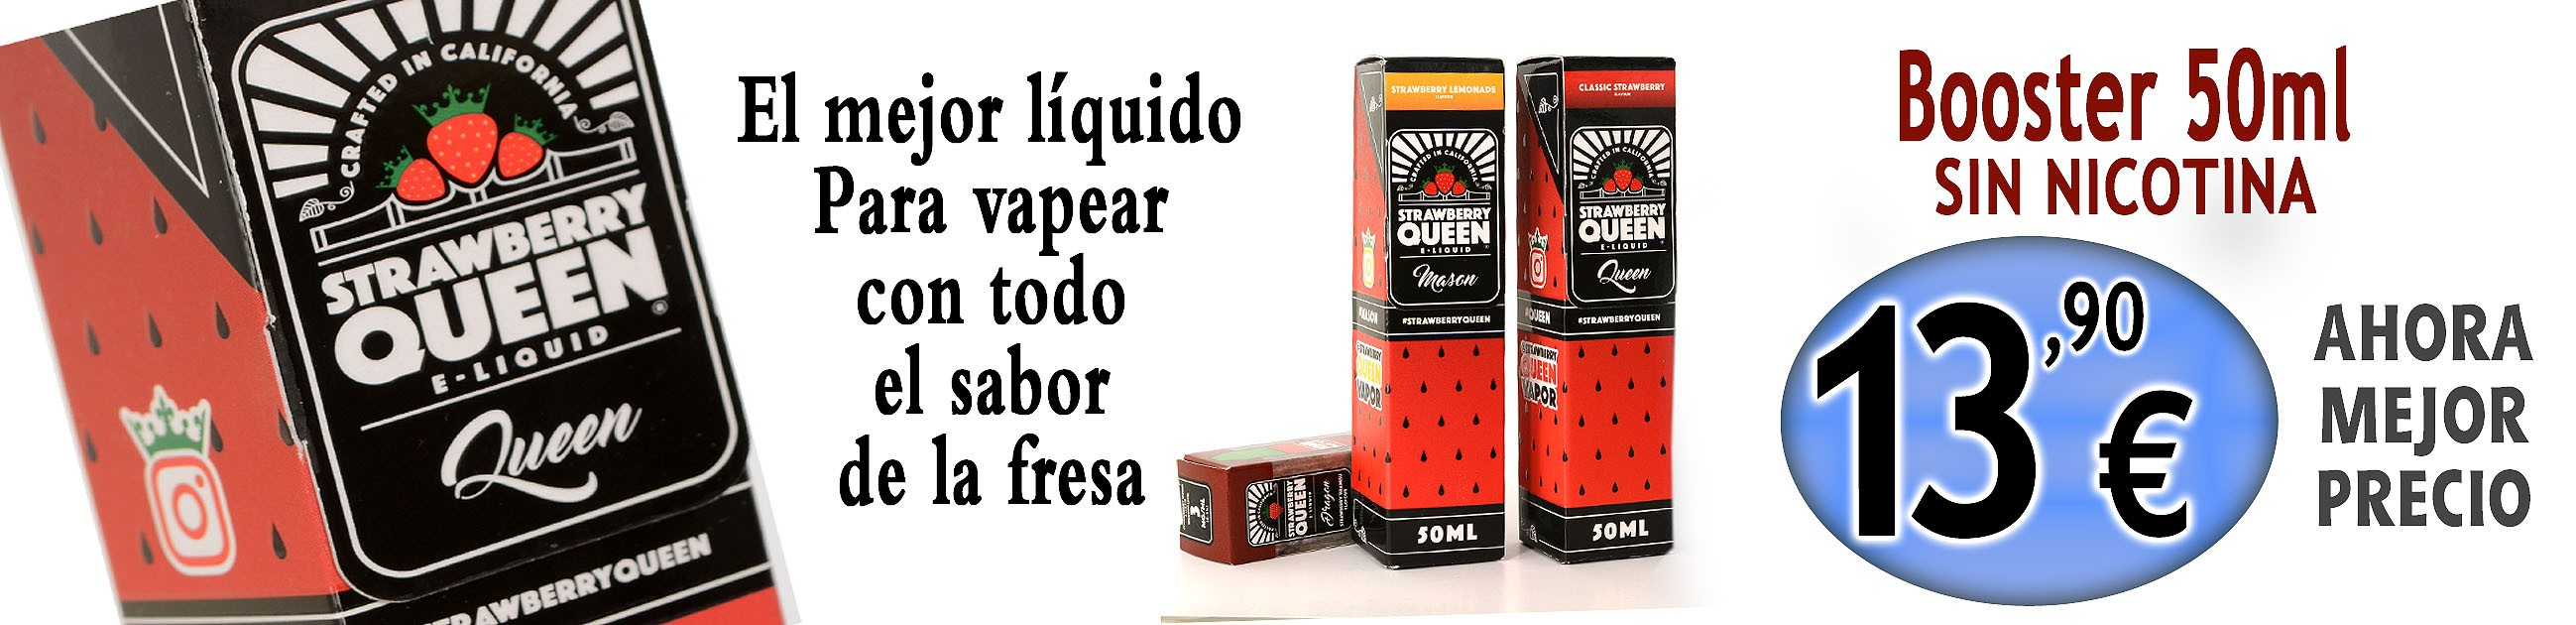 STRAWBERRY QUEEN Oferta 50 ml liquido